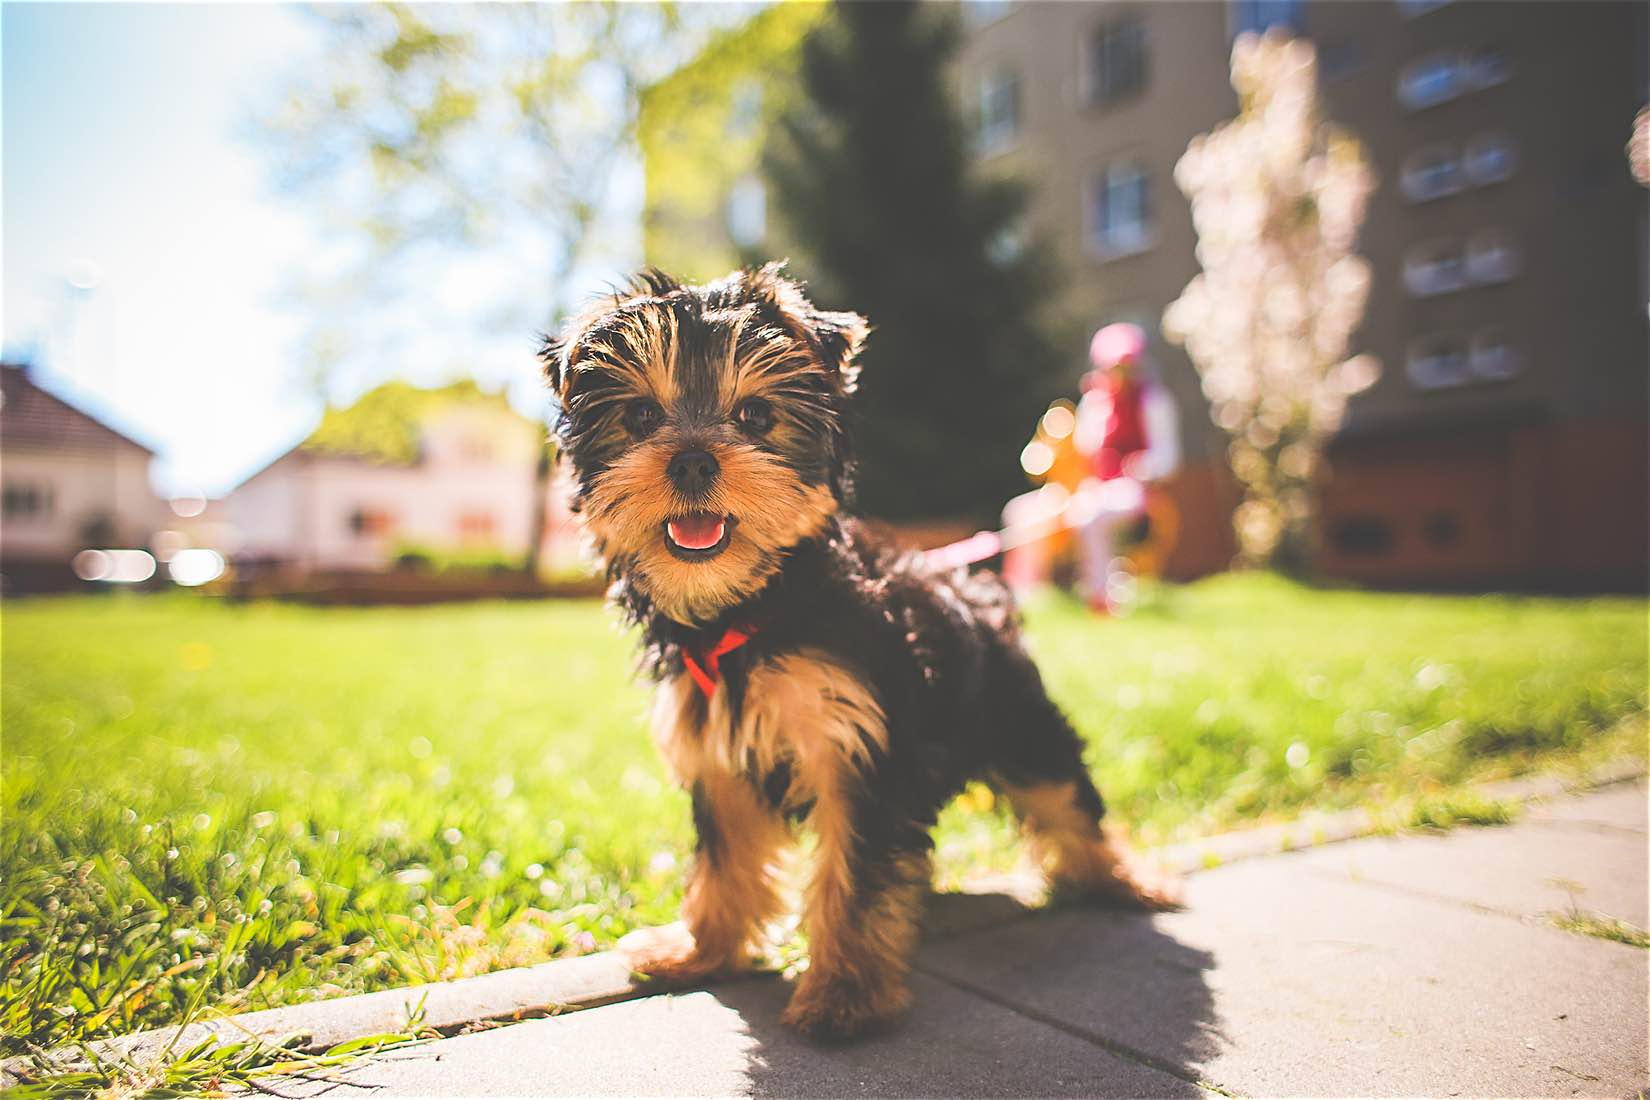 Adopting a dog has tremendous physical and psychology benefits. There's a reason why dogs are man's best friend. Here's how a pup can better your life.